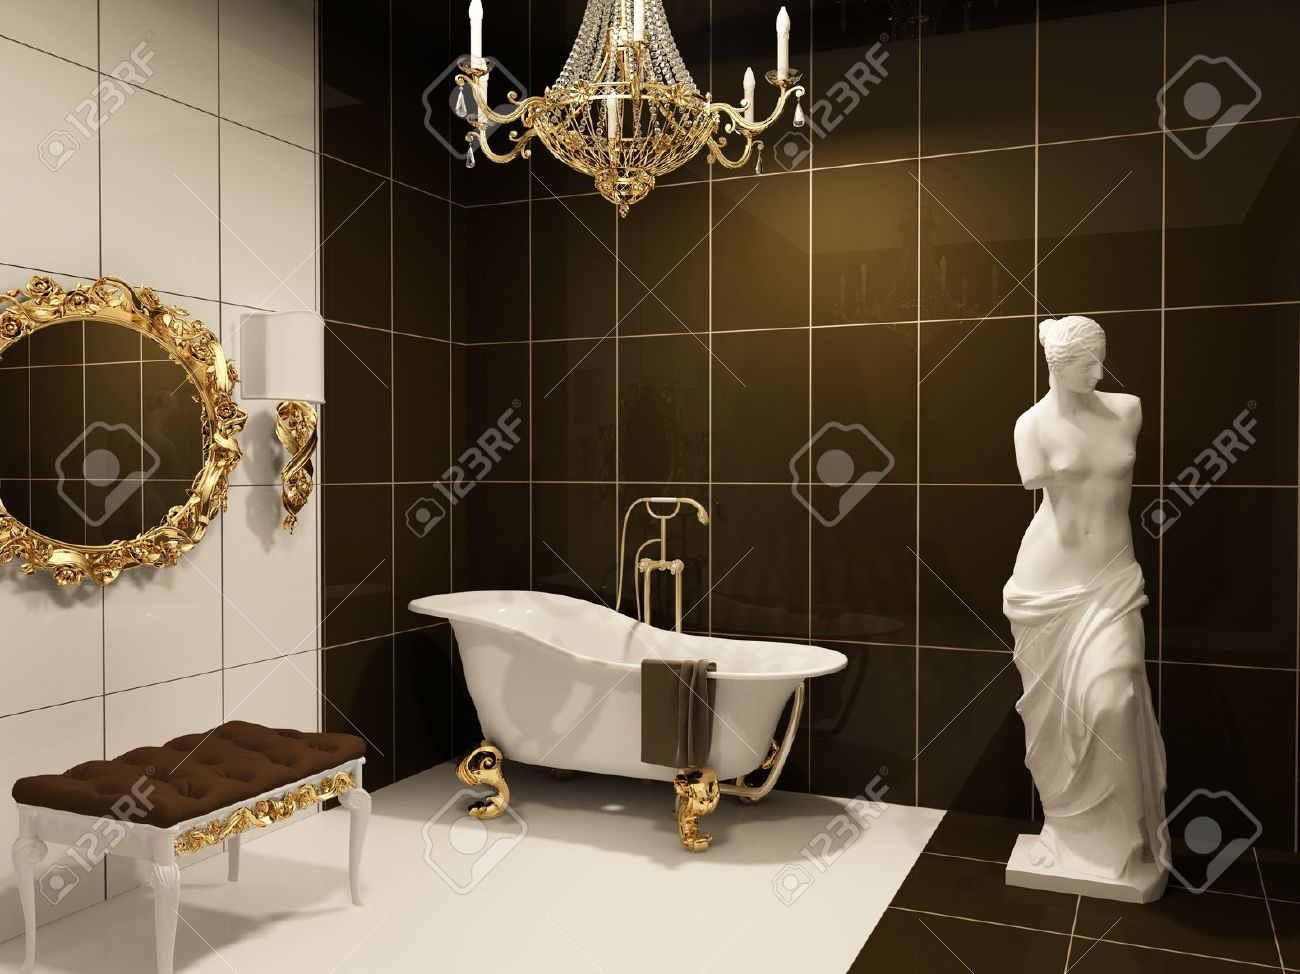 Luxurious furniture with statue of Venus in baroque bathroom - 10350709